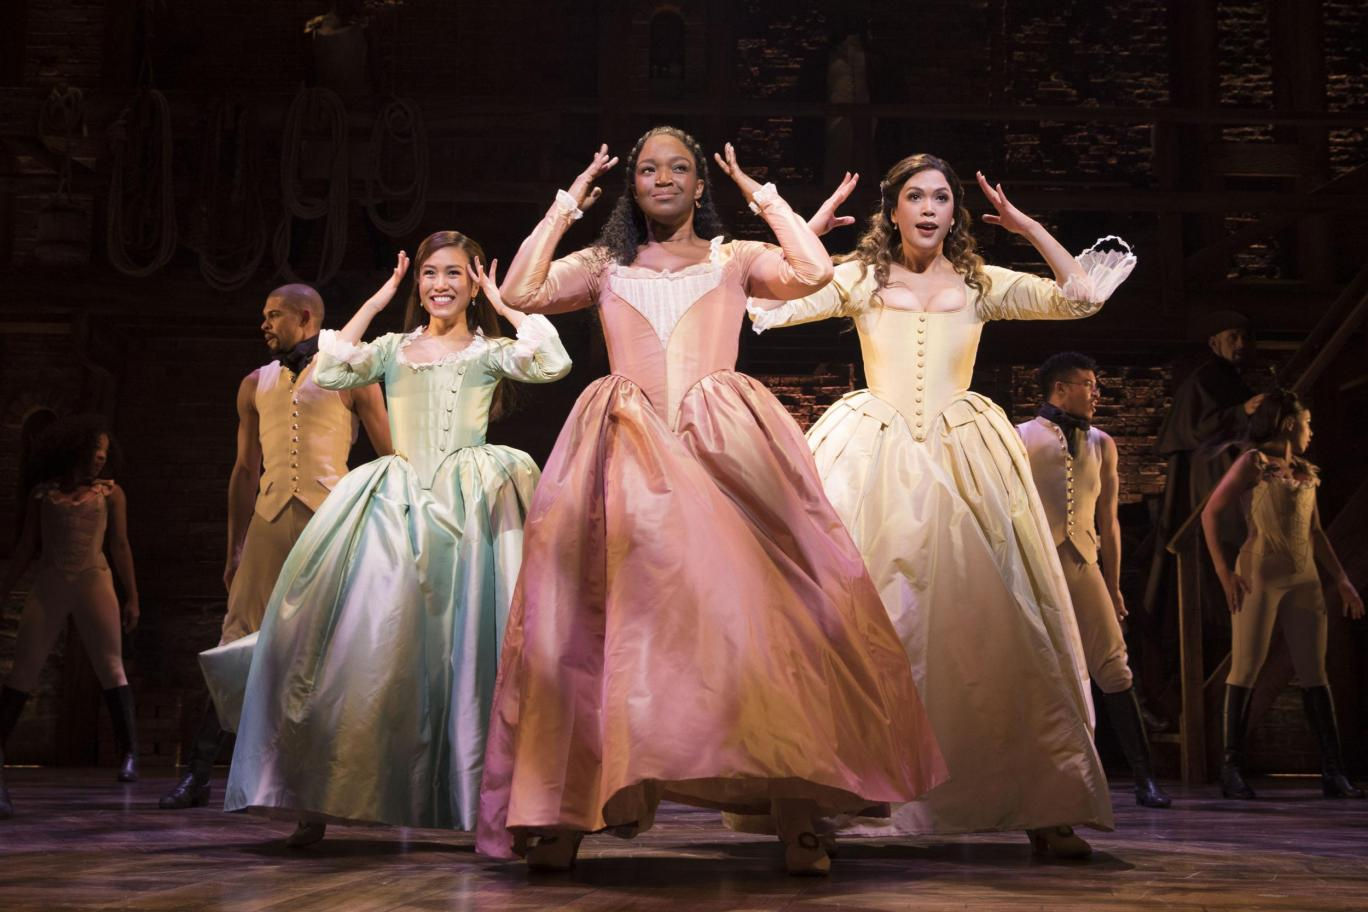 How to get Hamilton tickets - The Schuyler Sisters